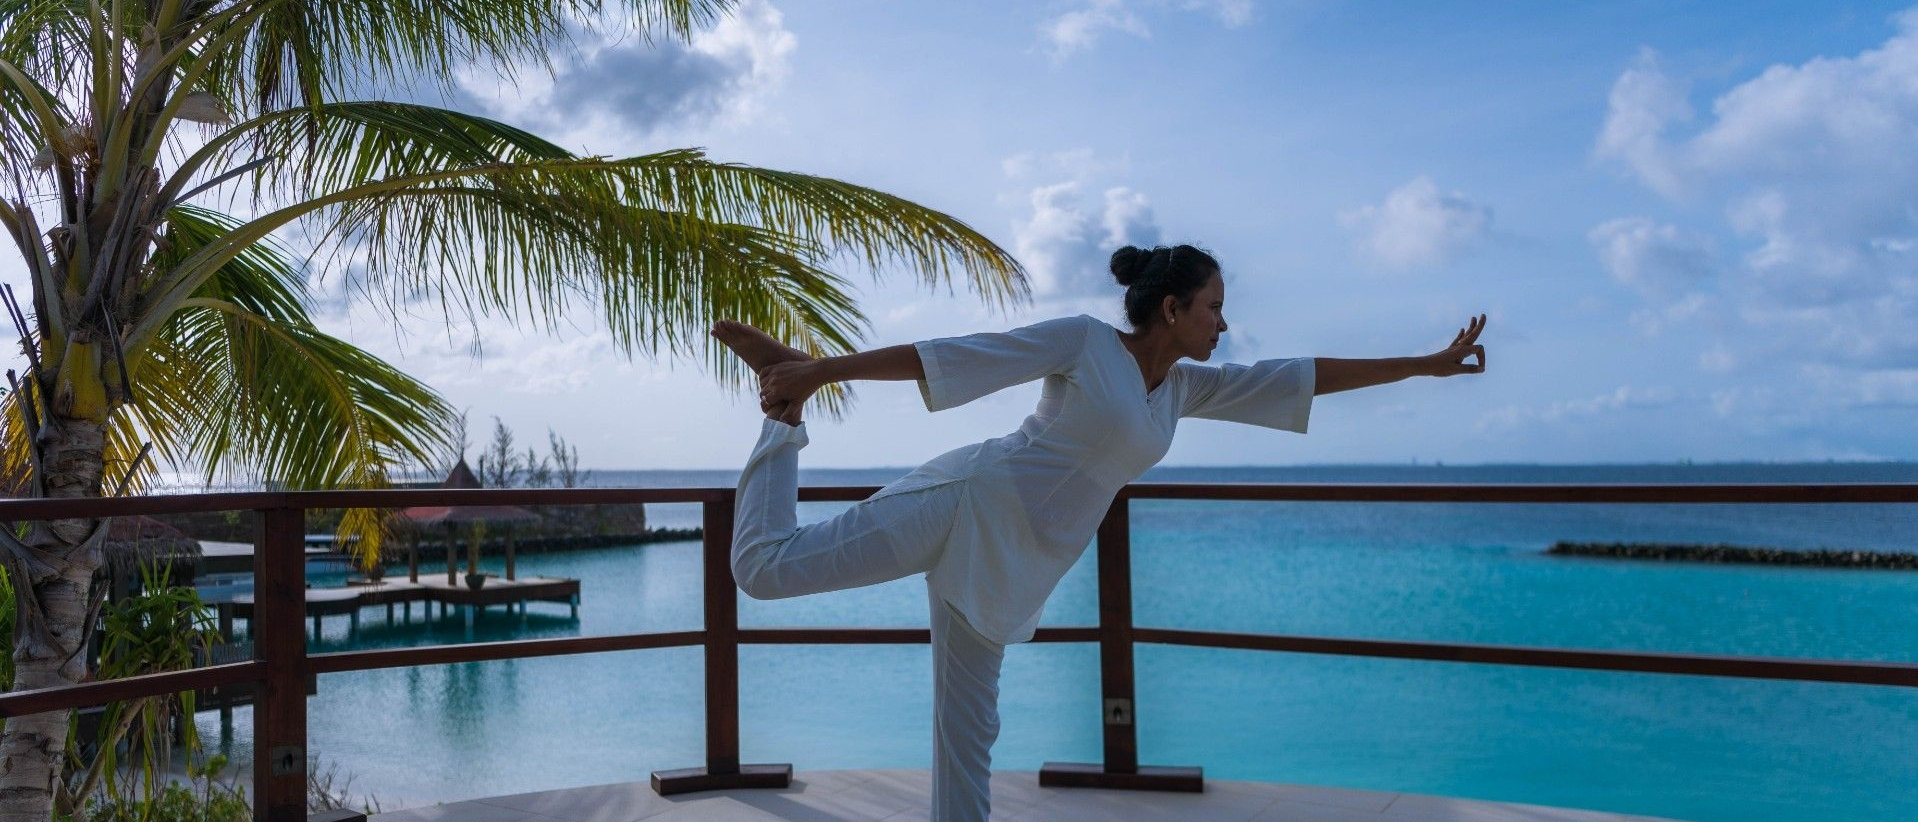 Health & Wellness Retreat Offer at Grand Park Kodhipparu Maldives